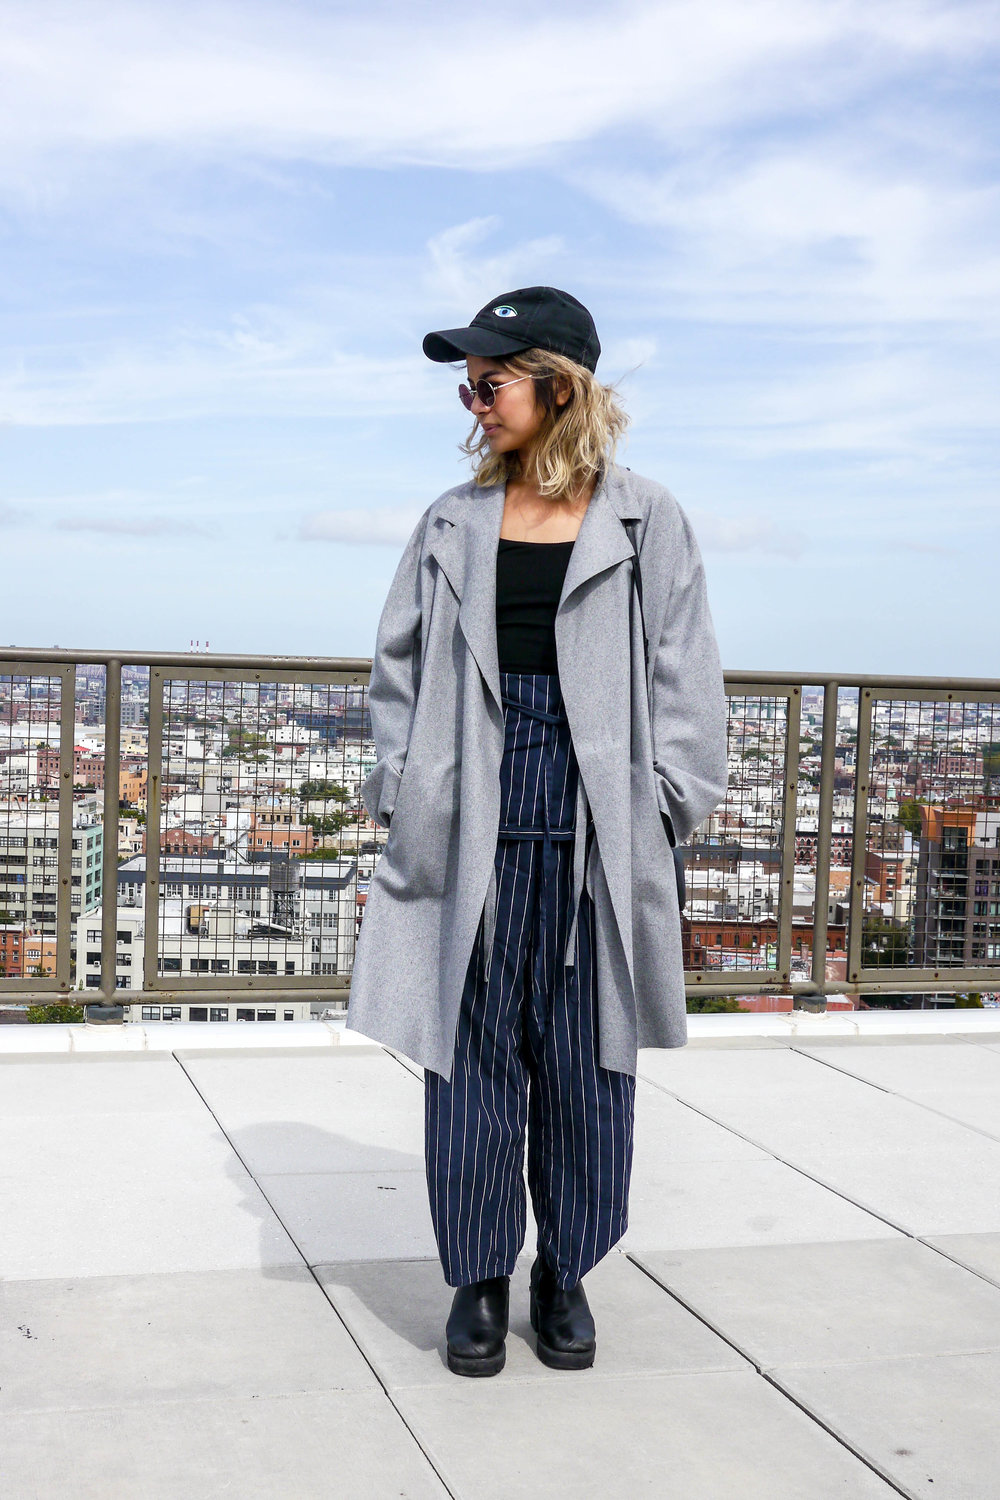 top, reformation    ; jumpsuit, chloe sevigny for opening ceremony ;    coat, acne    ;    boots, asos    ;    bag, celine    ; sunglasses, warby parker; hat, opening ceremony